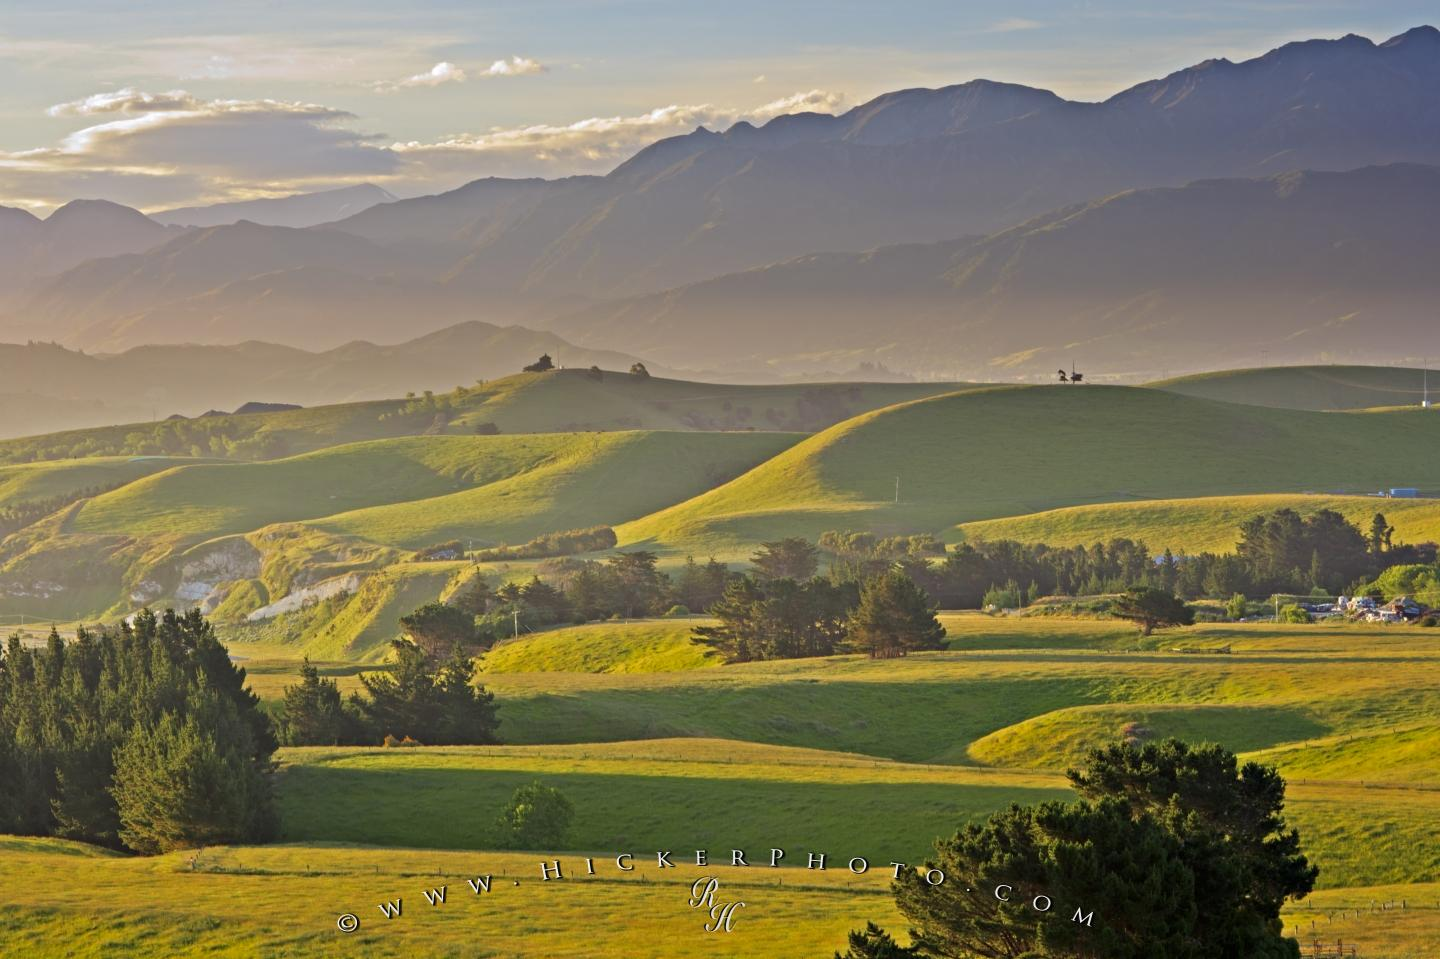 Free wallpaper background canterbury landscape new zealand for Landscape images